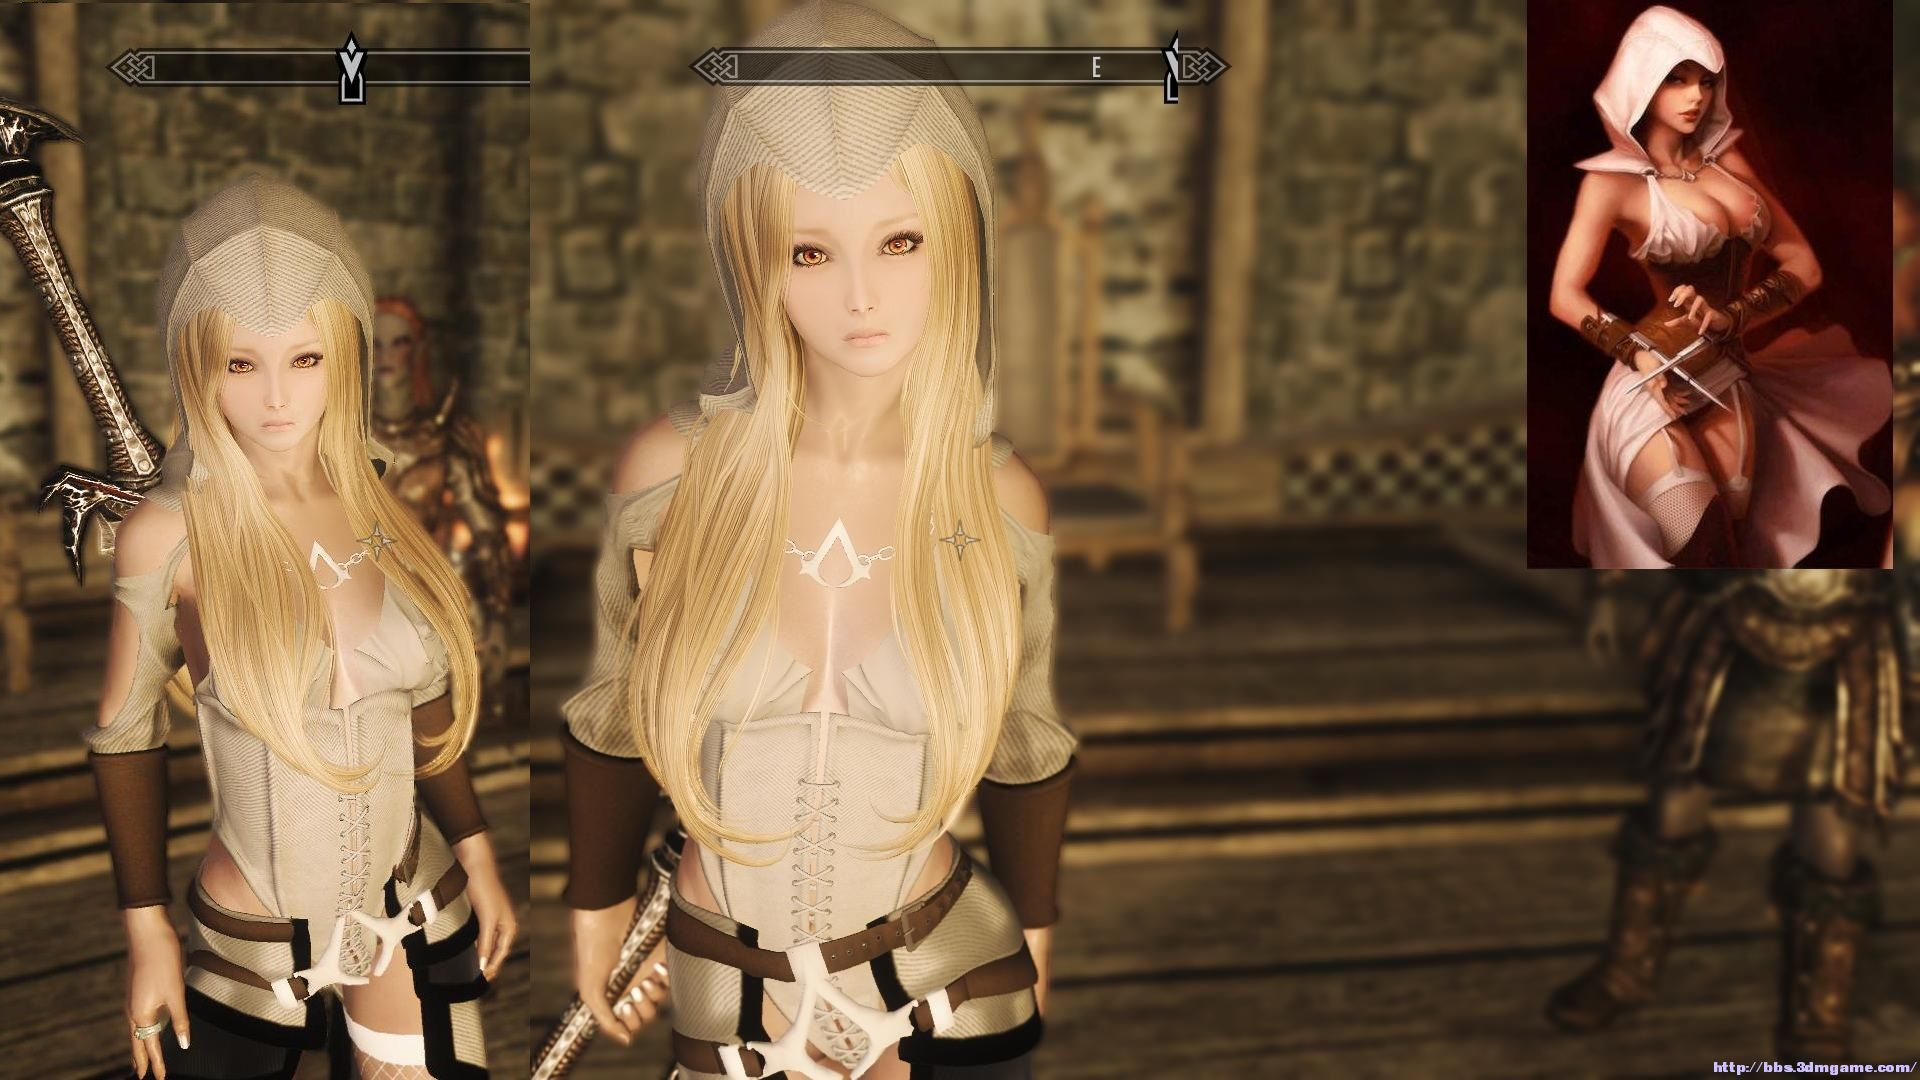 Nude lineage 2 characters in armors hardcore films